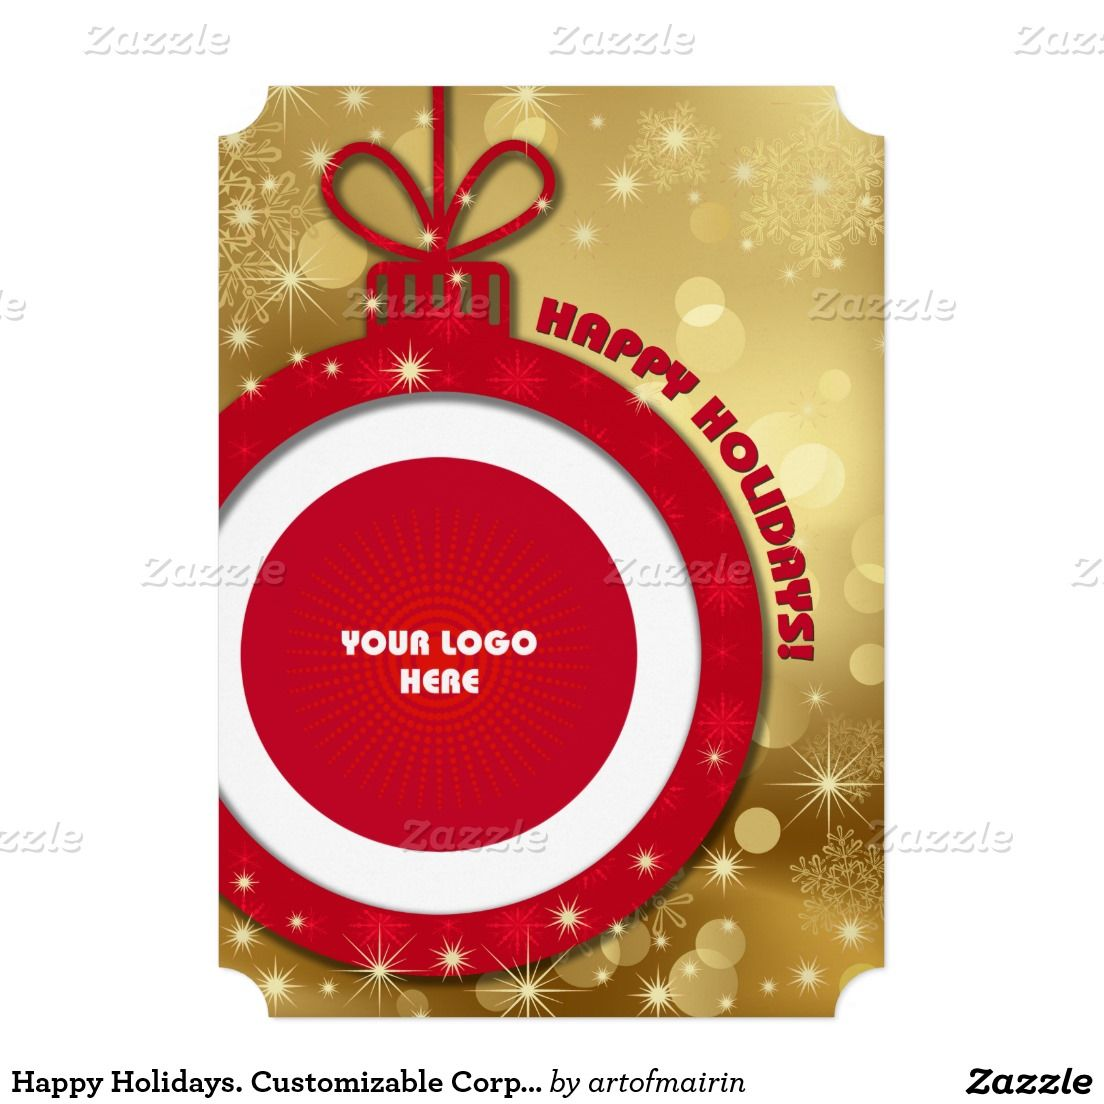 Happy Holidays Customizable Corporate Photo Cards Zazzle Com Holiday Design Card Business Christmas Unique Greeting Cards